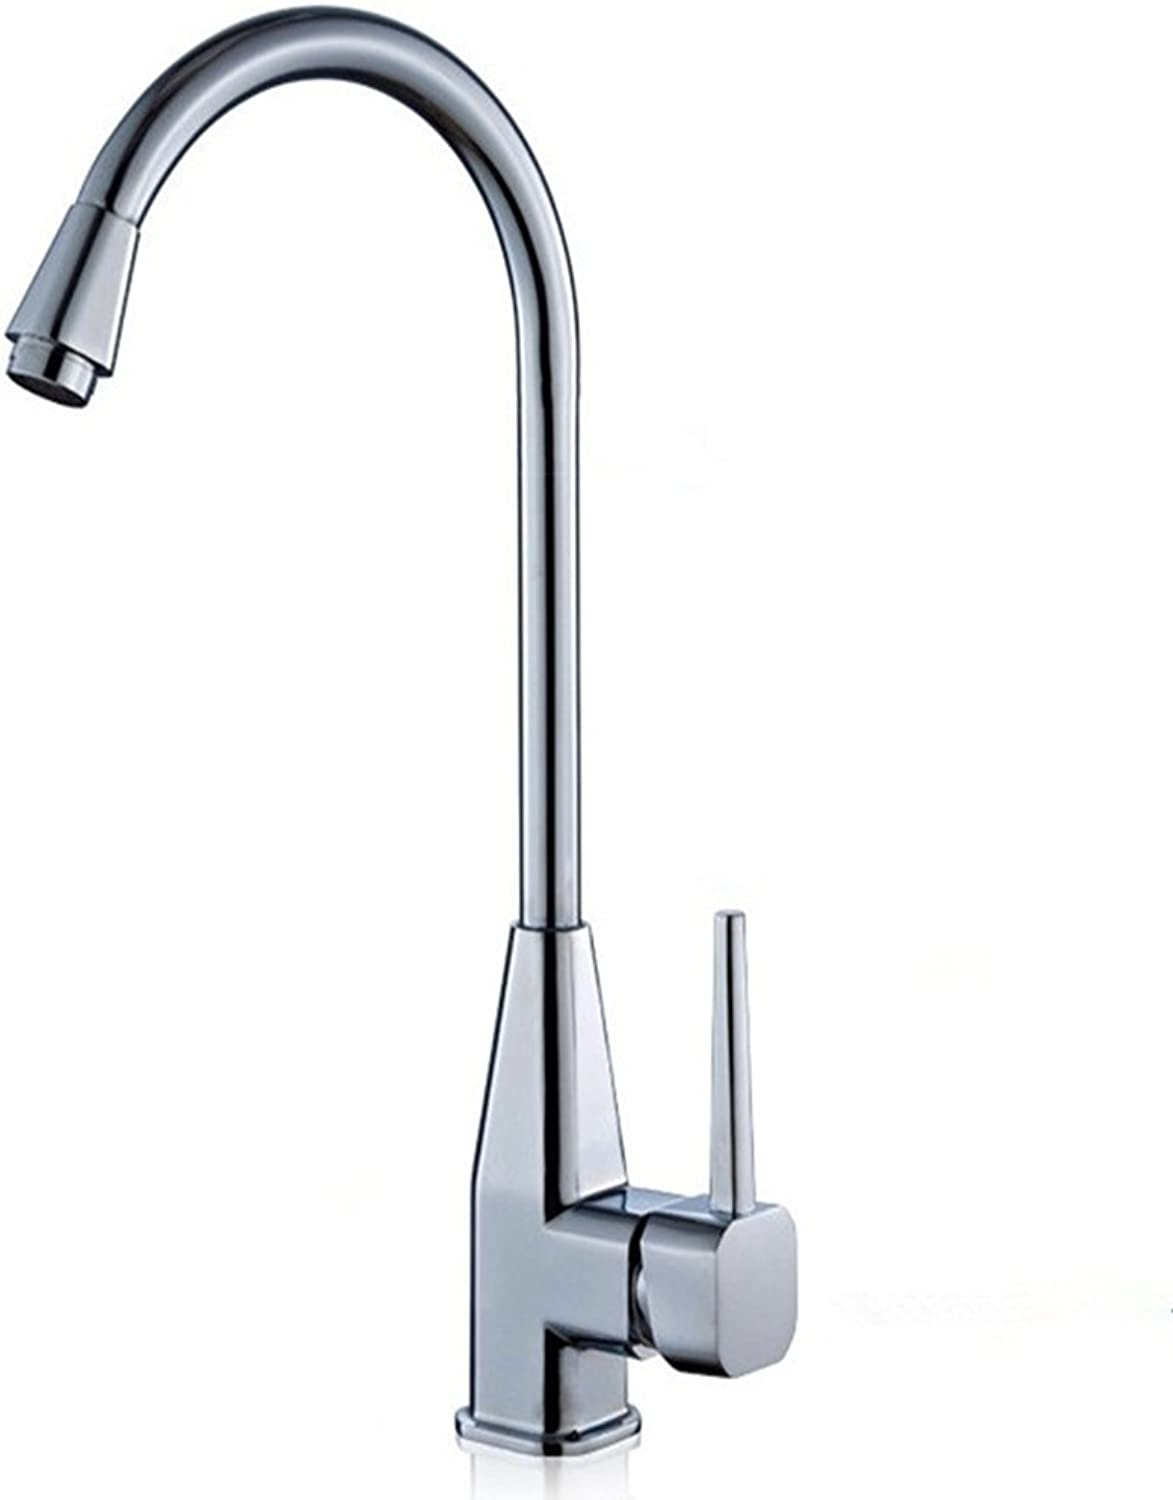 LaaN Kitchen Bathroom Single Hole Faucet Hot and Cold Water Basin Copper Core Body Sink Faucet